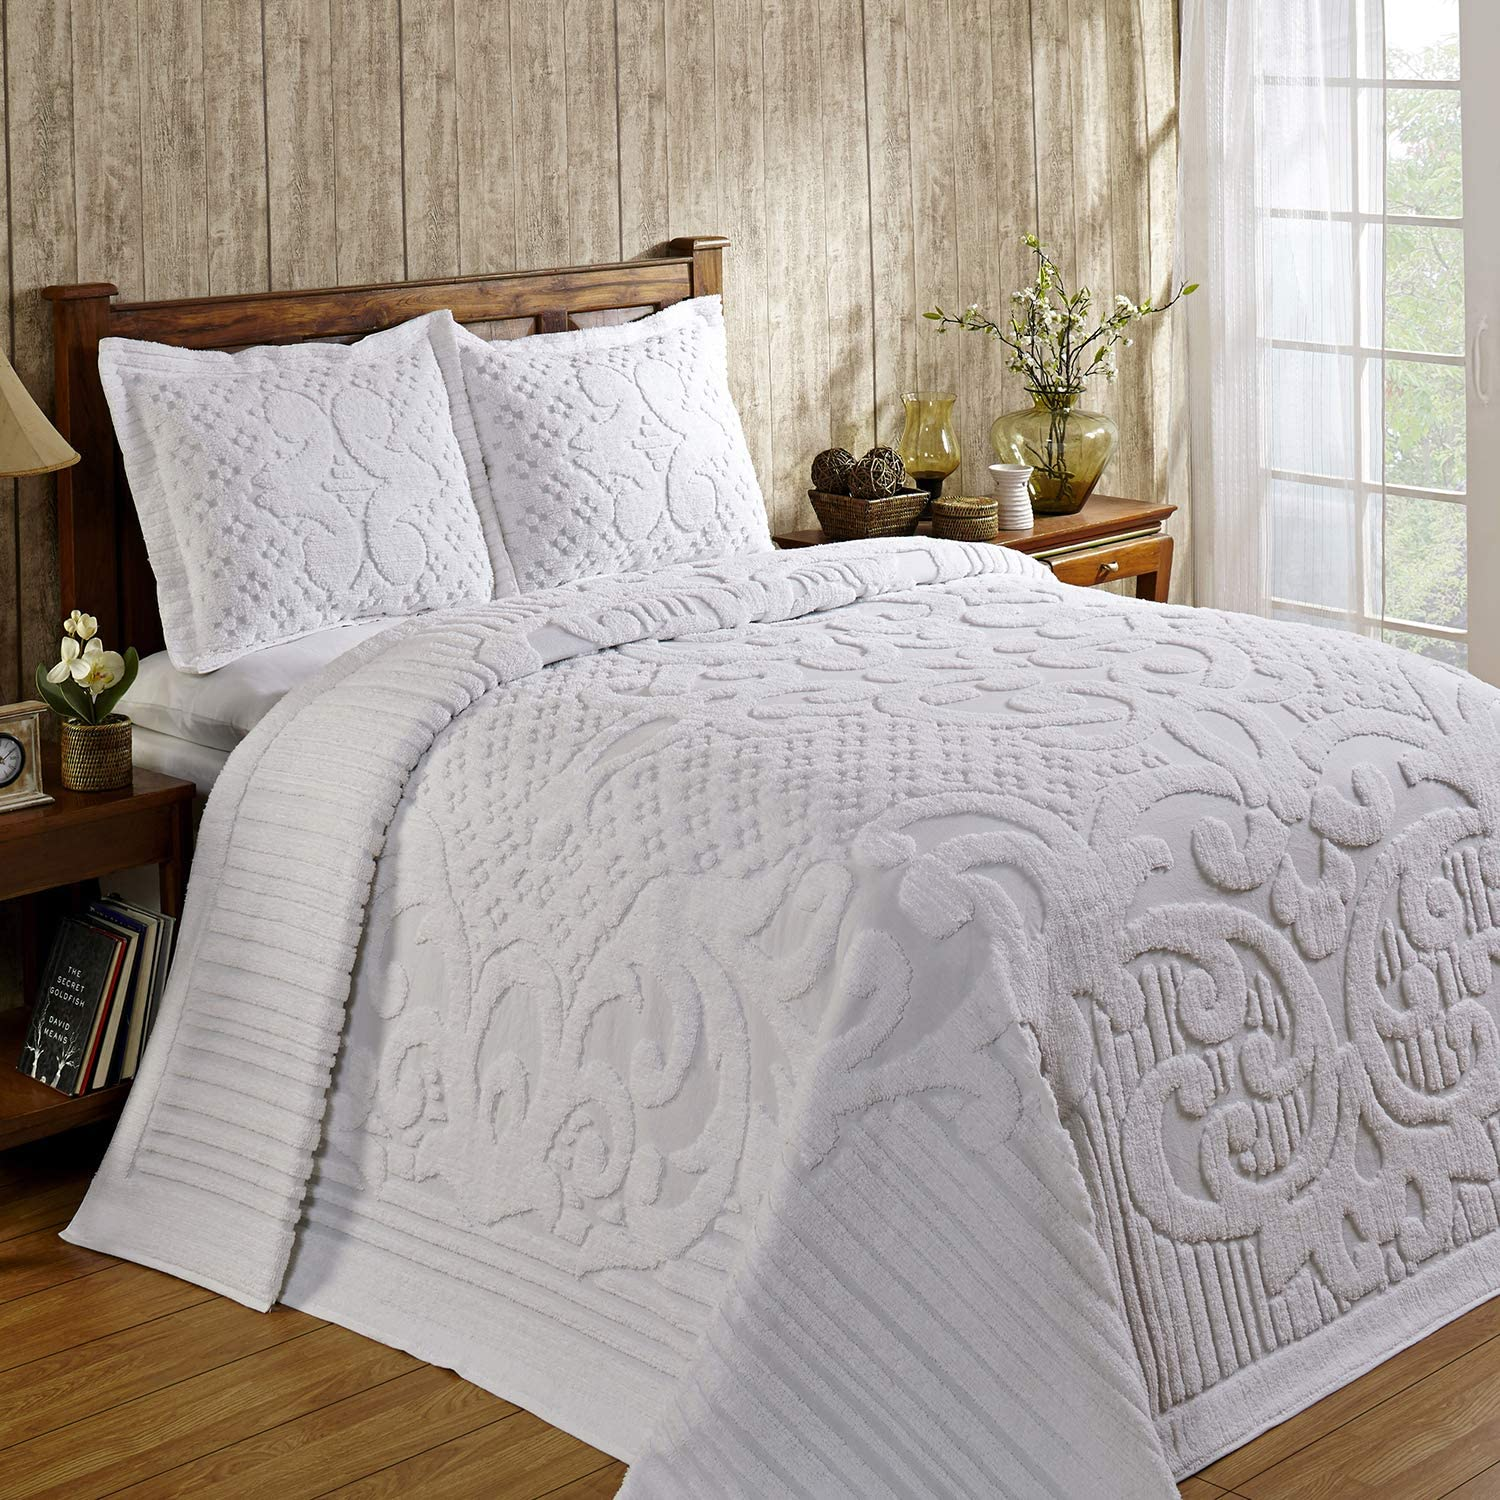 Better Trends Ashton Collection Is Super Soft And Light Weight In Medallion Design 100 Pecent Cotton Tufted Unique Luxurious Machine Washable Tumble Dry, Twin Bedspread, White